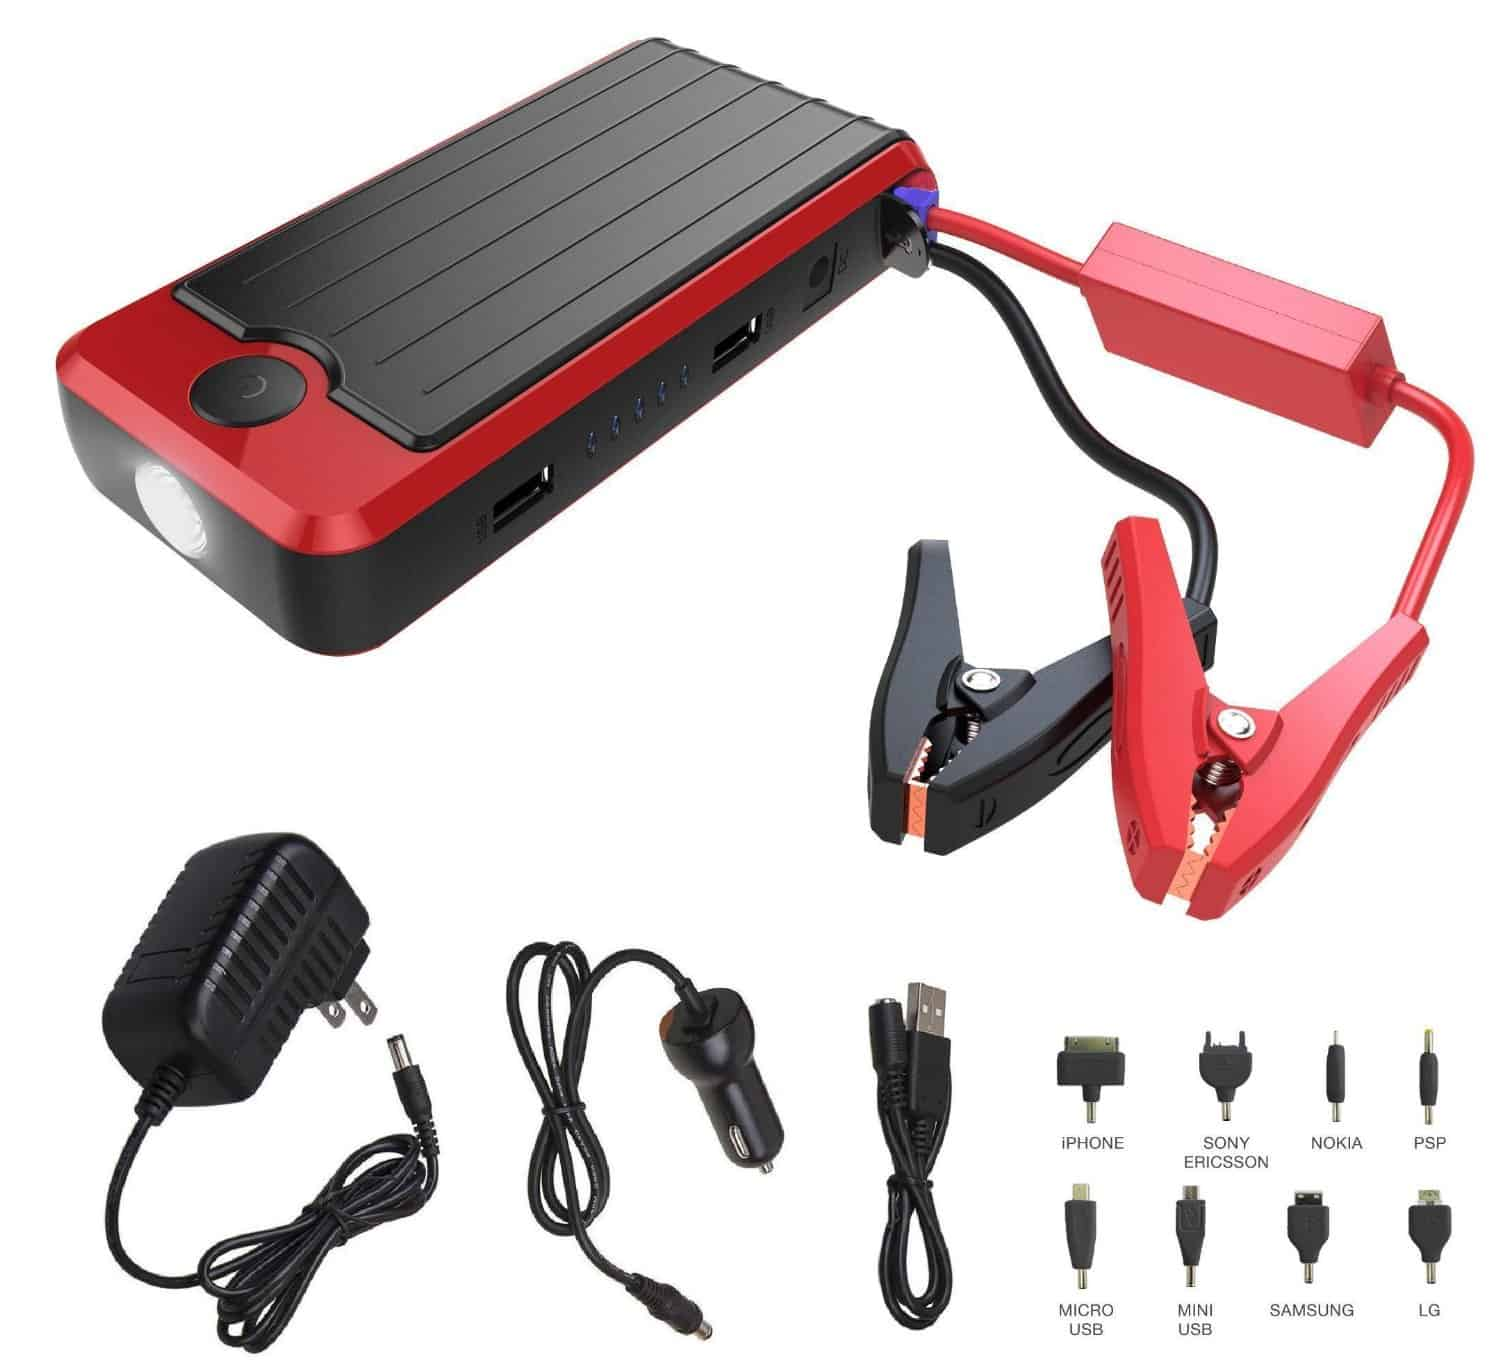 Power Bank August 2014 Psp Car Charger Deal Powerall Portable And Jump Starter